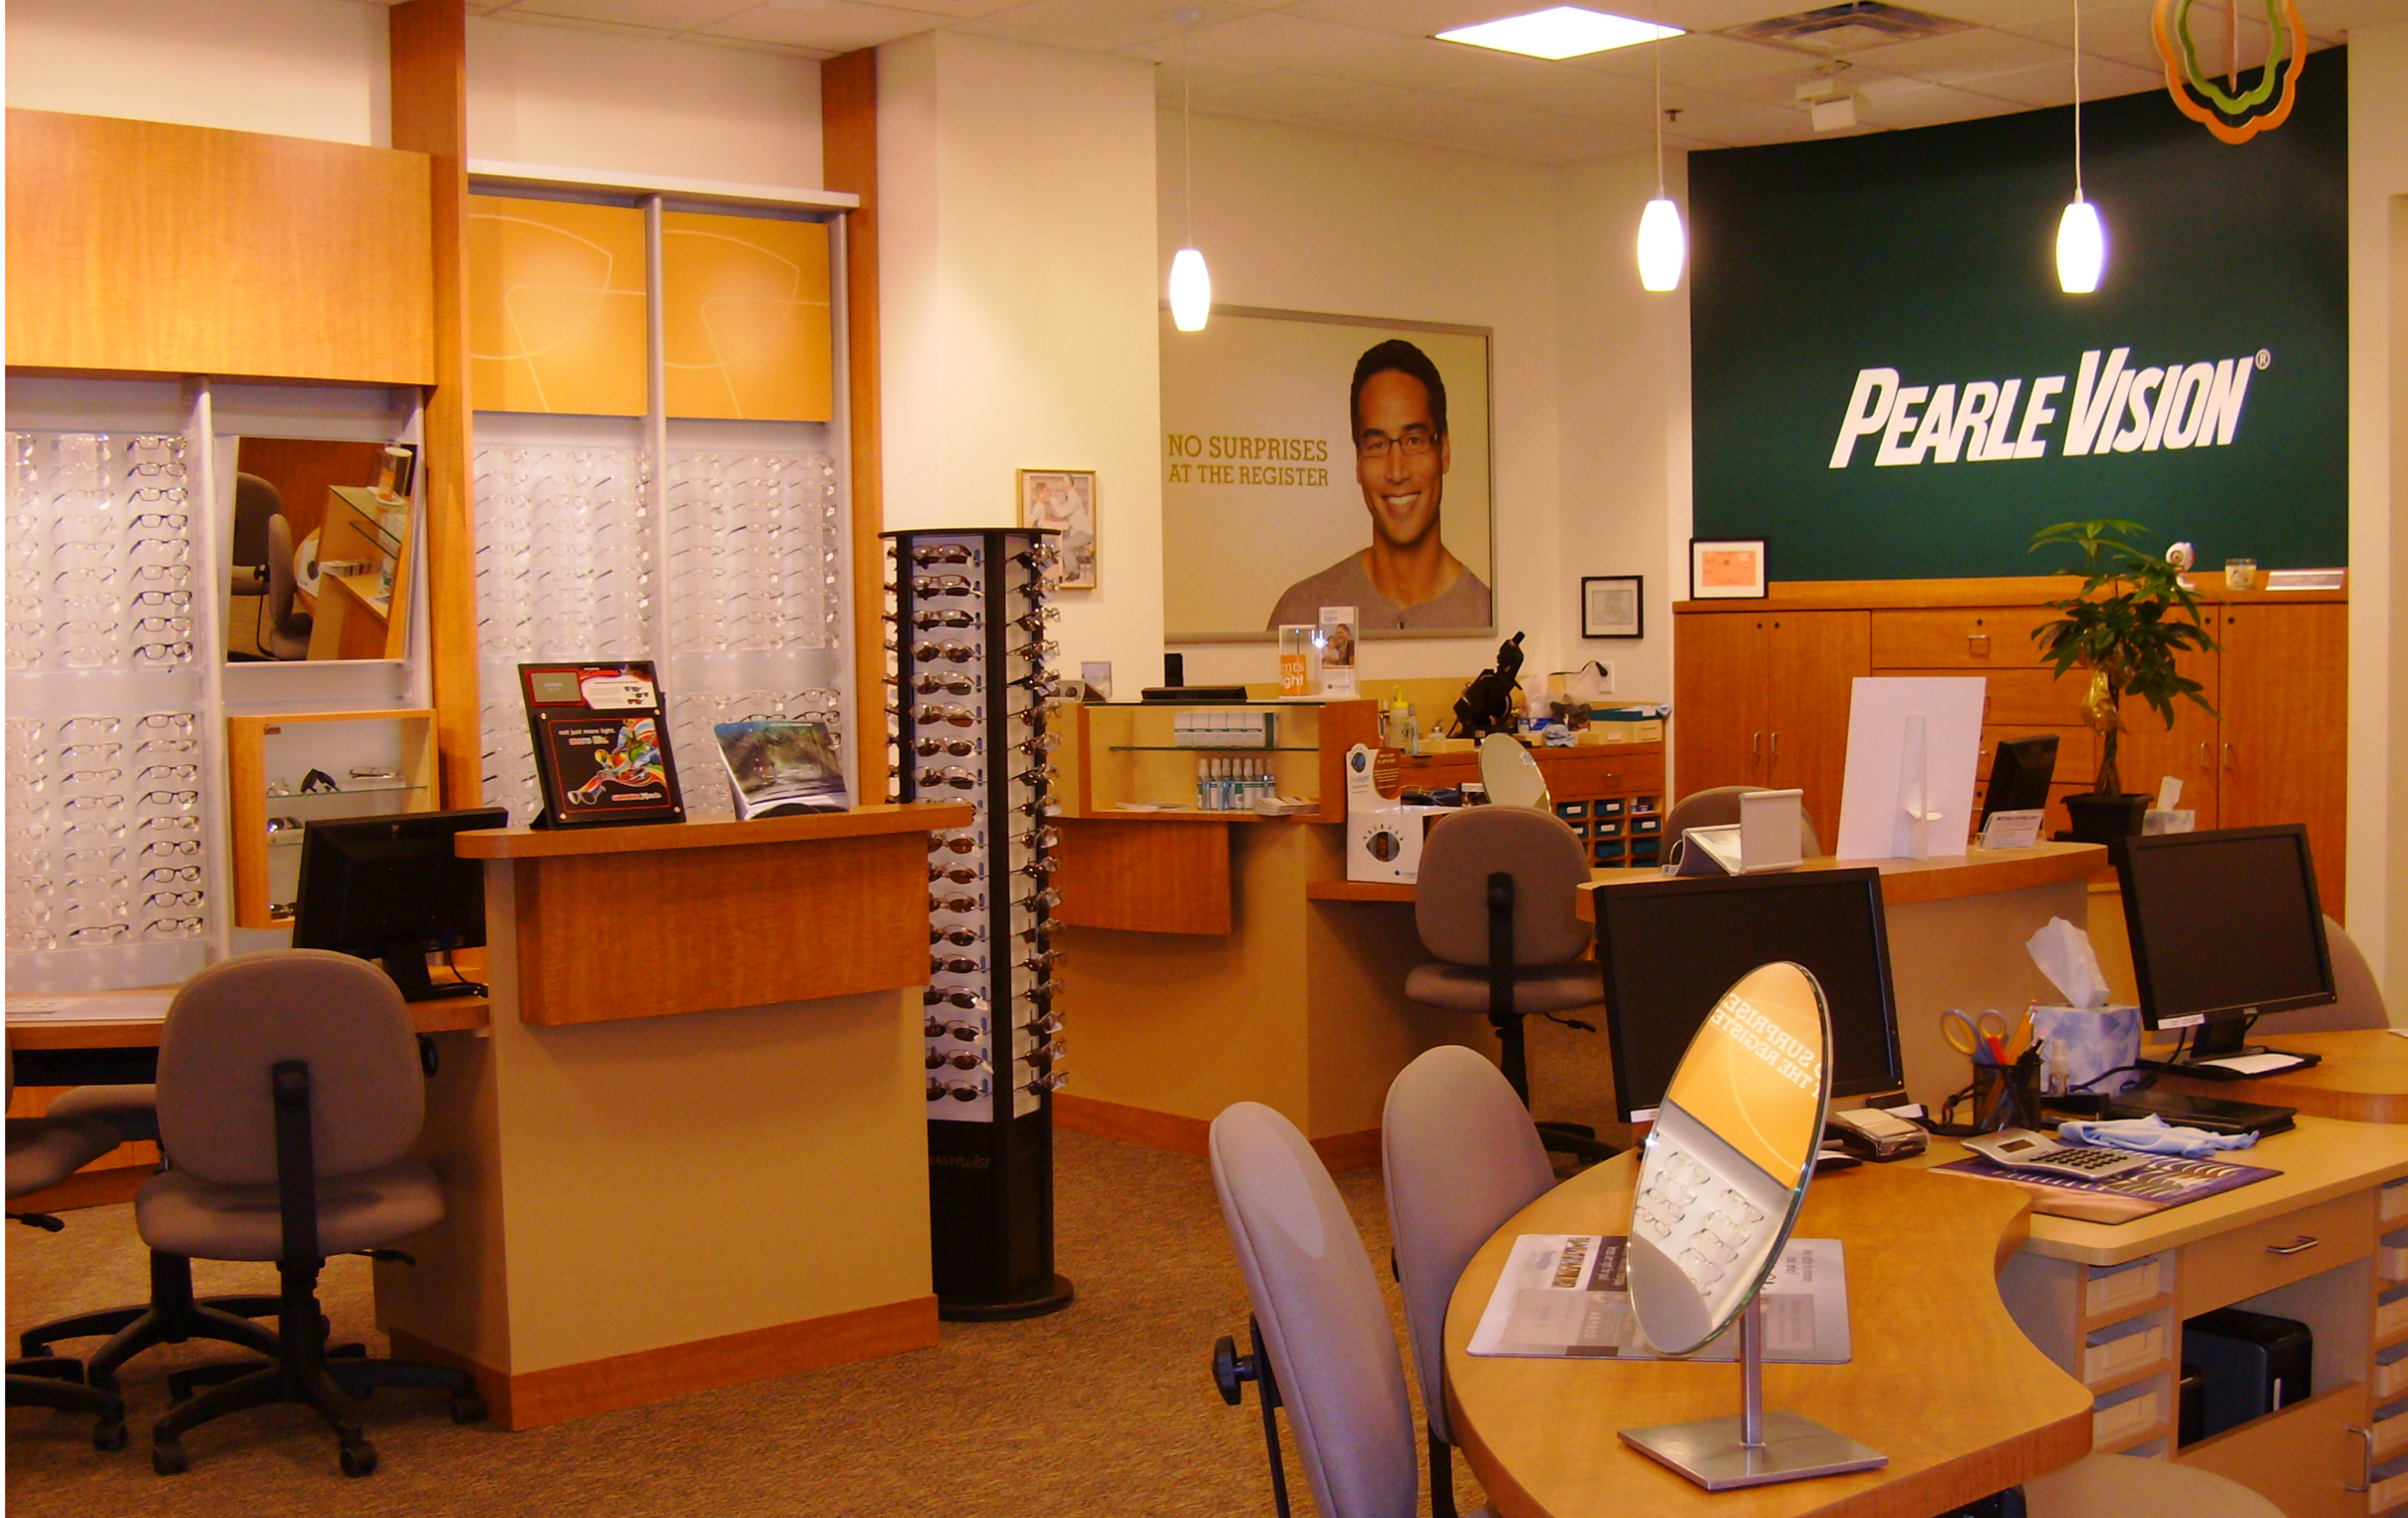 Pearle Vision Eye Care Center in Webster, NY | Pearle Vision